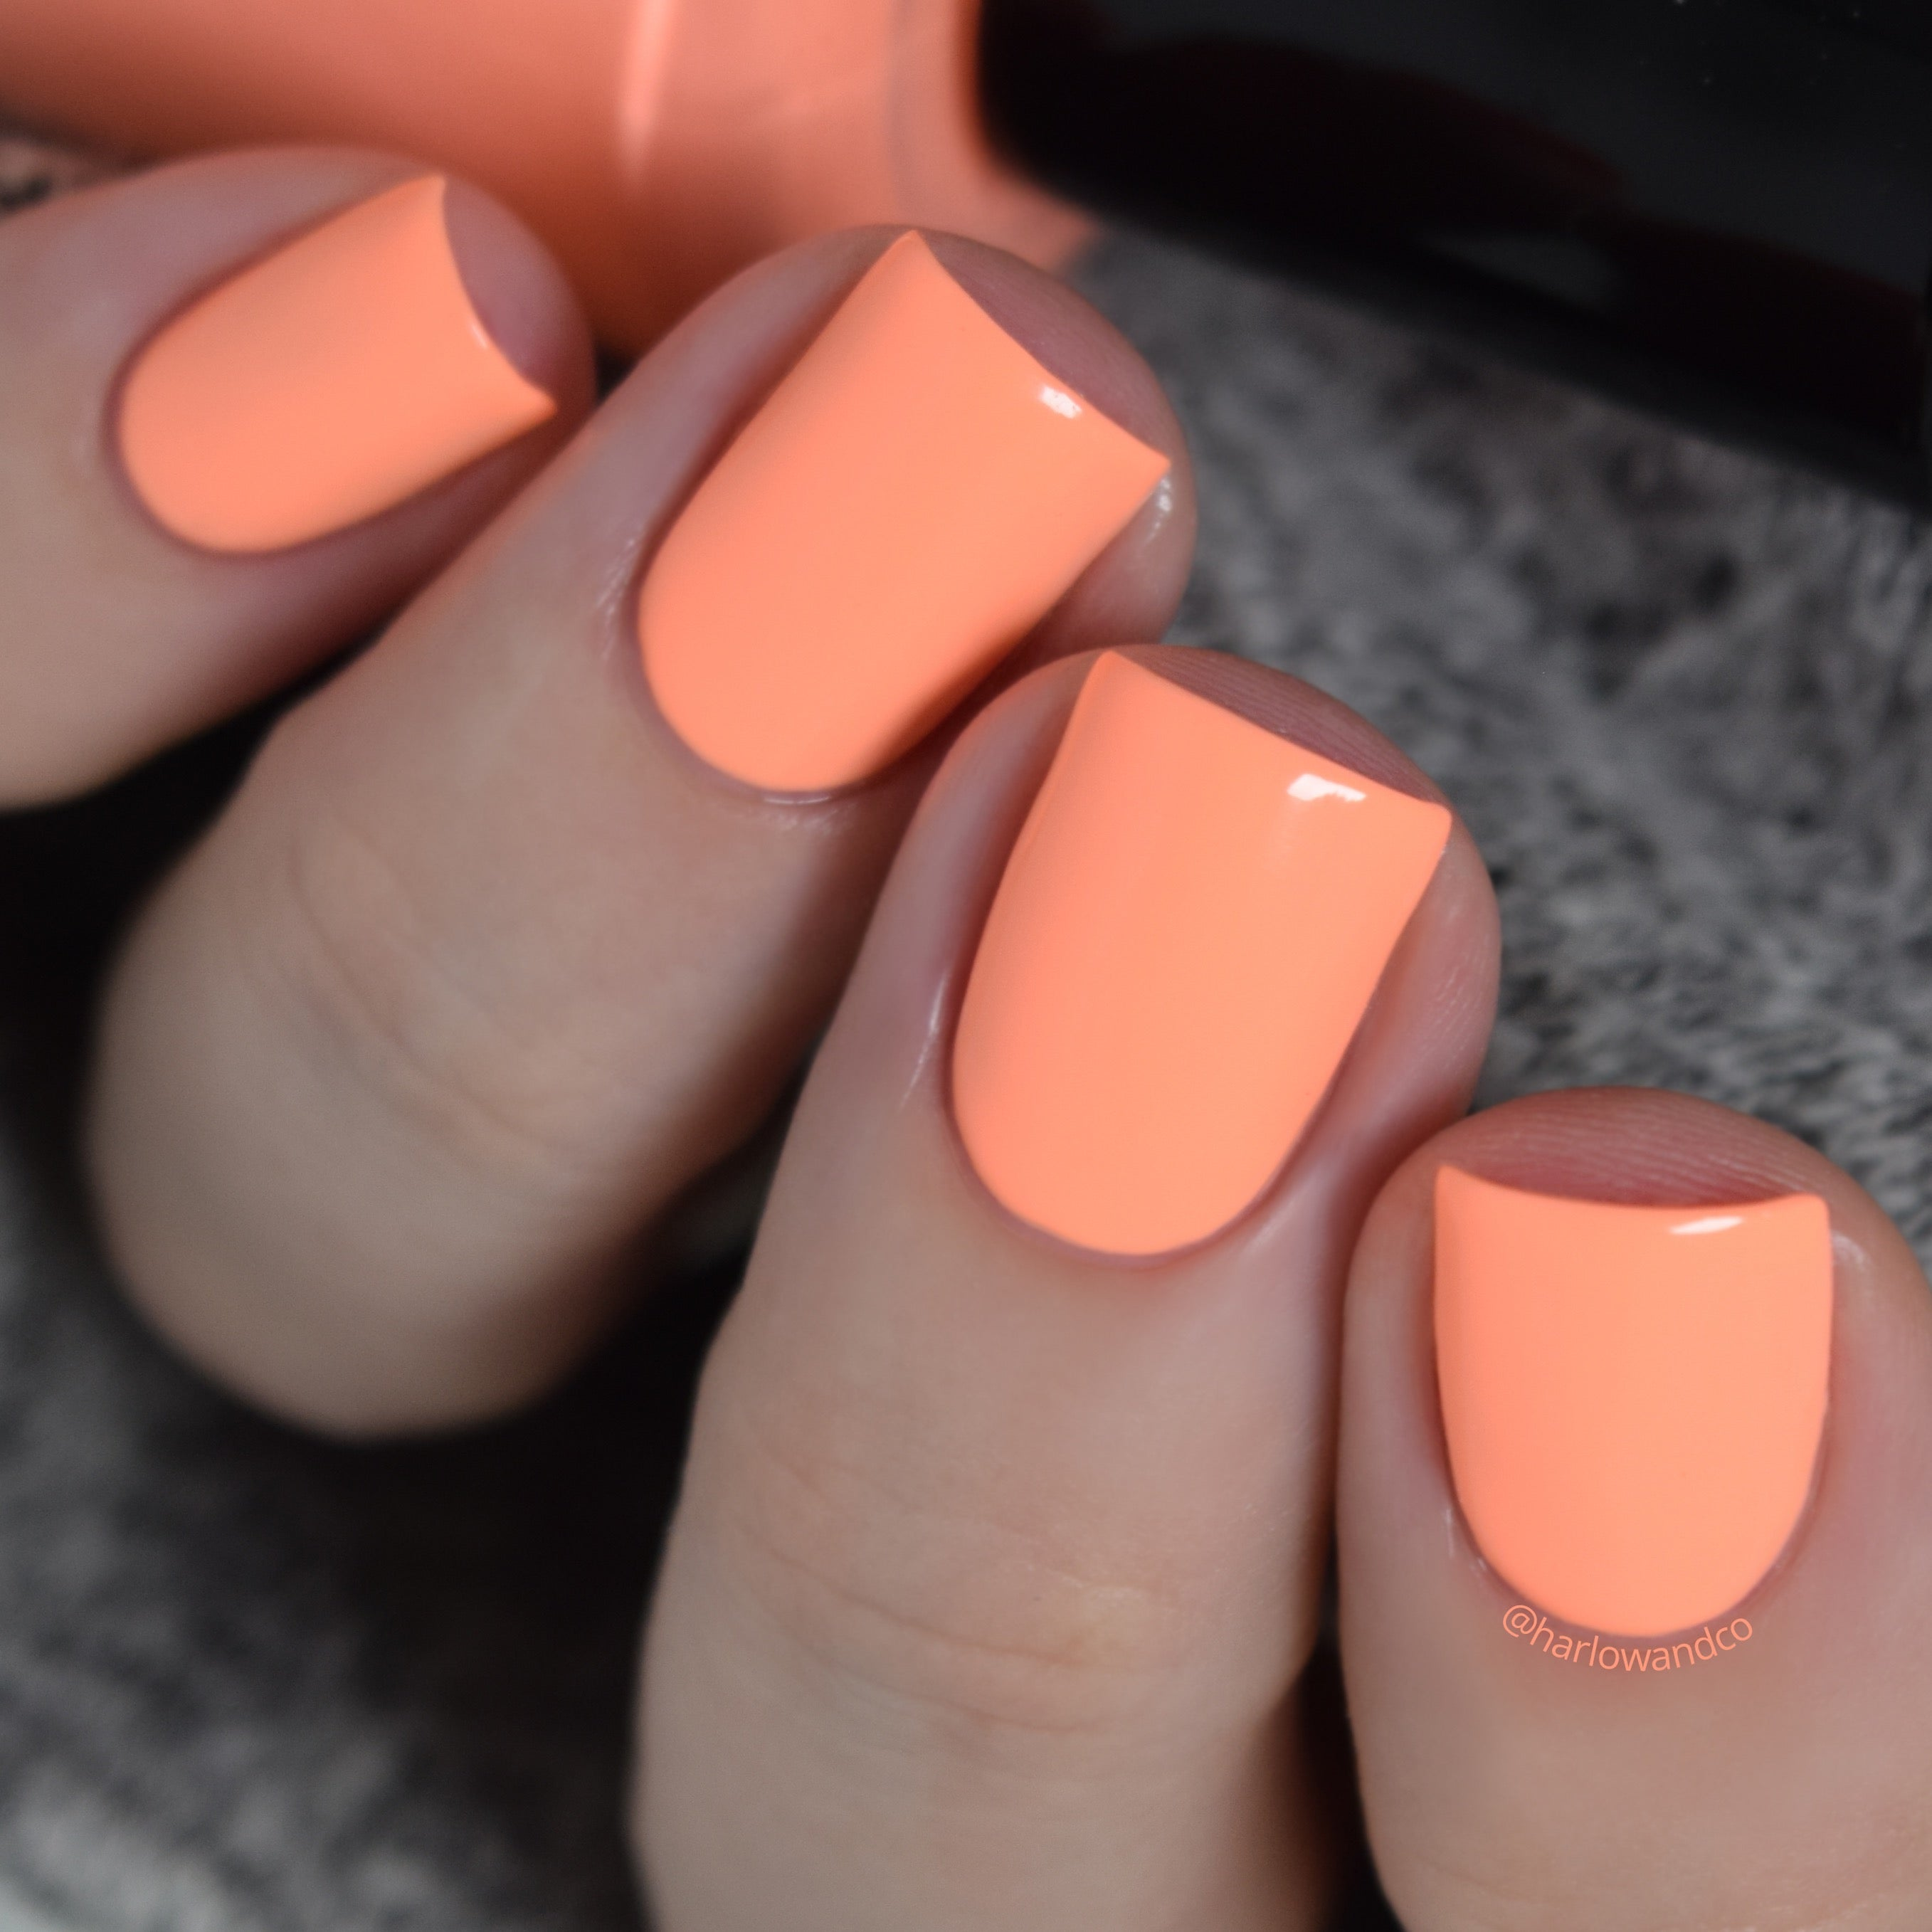 KBShimmer Papaya Don't Preach neon orange creme nail polish Seas the Day Collection